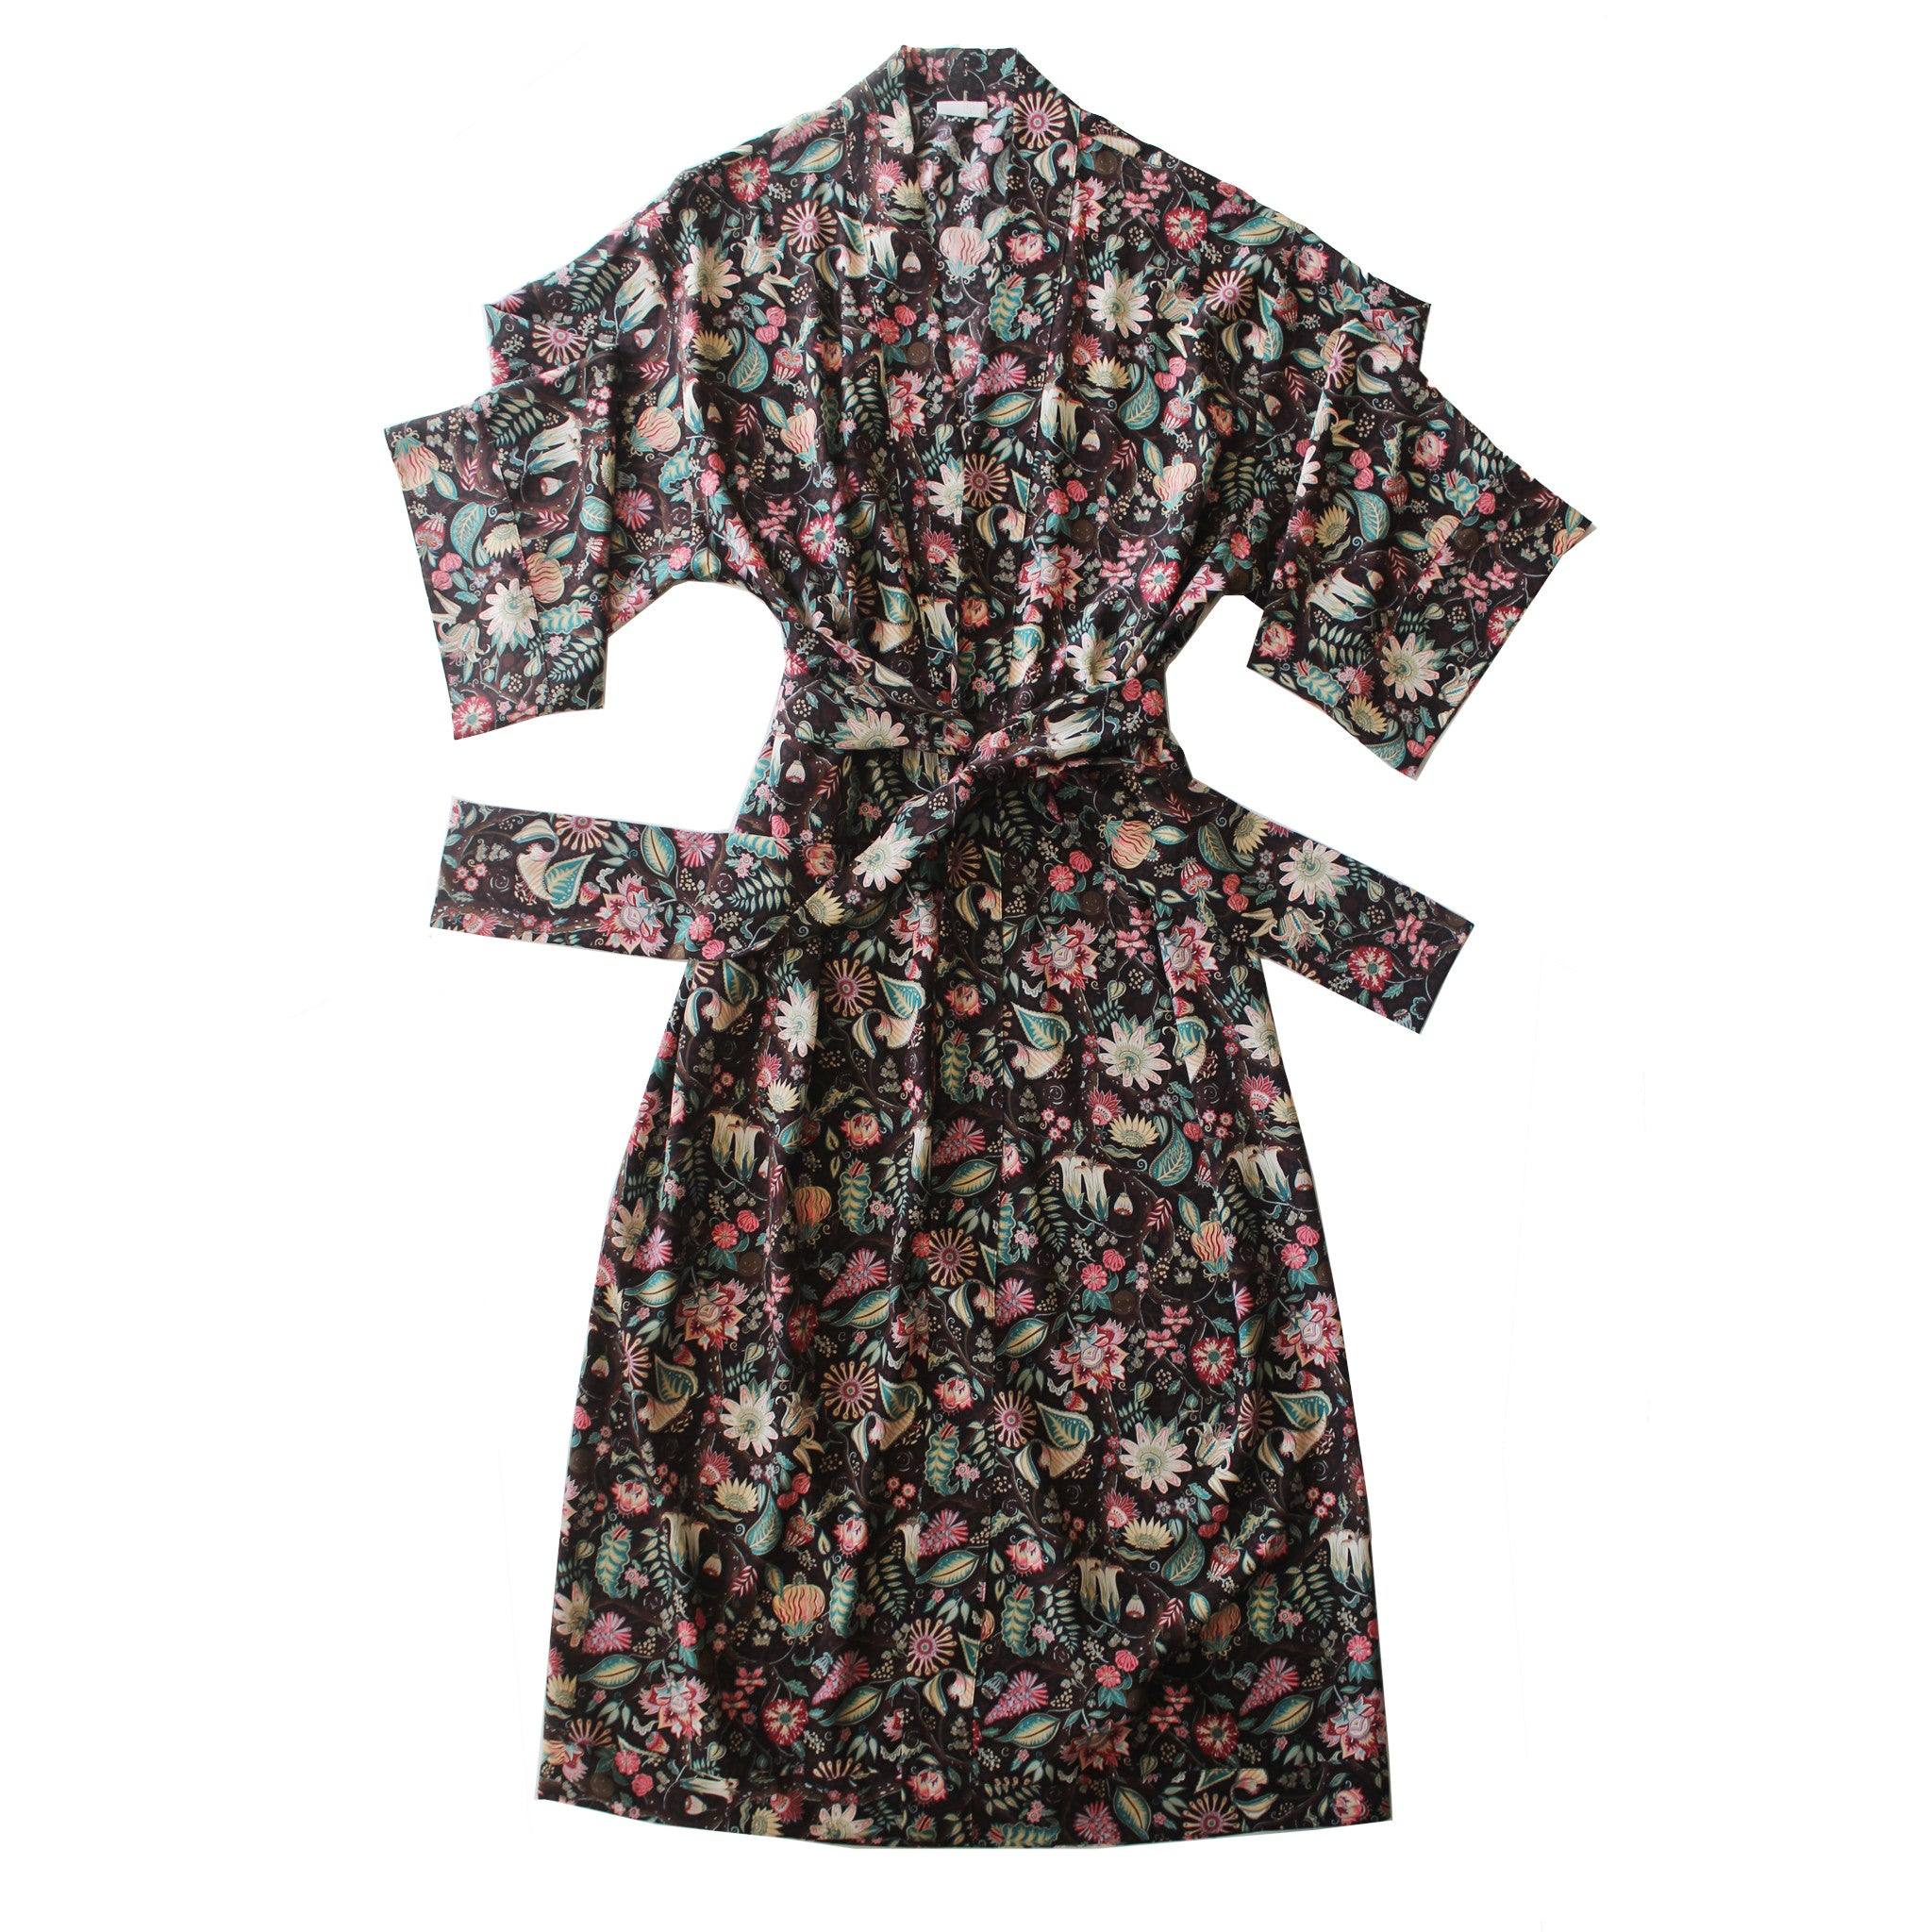 Asteria Kimono Robe in Tree of Life Liberty Print Silk Crepe De Chine